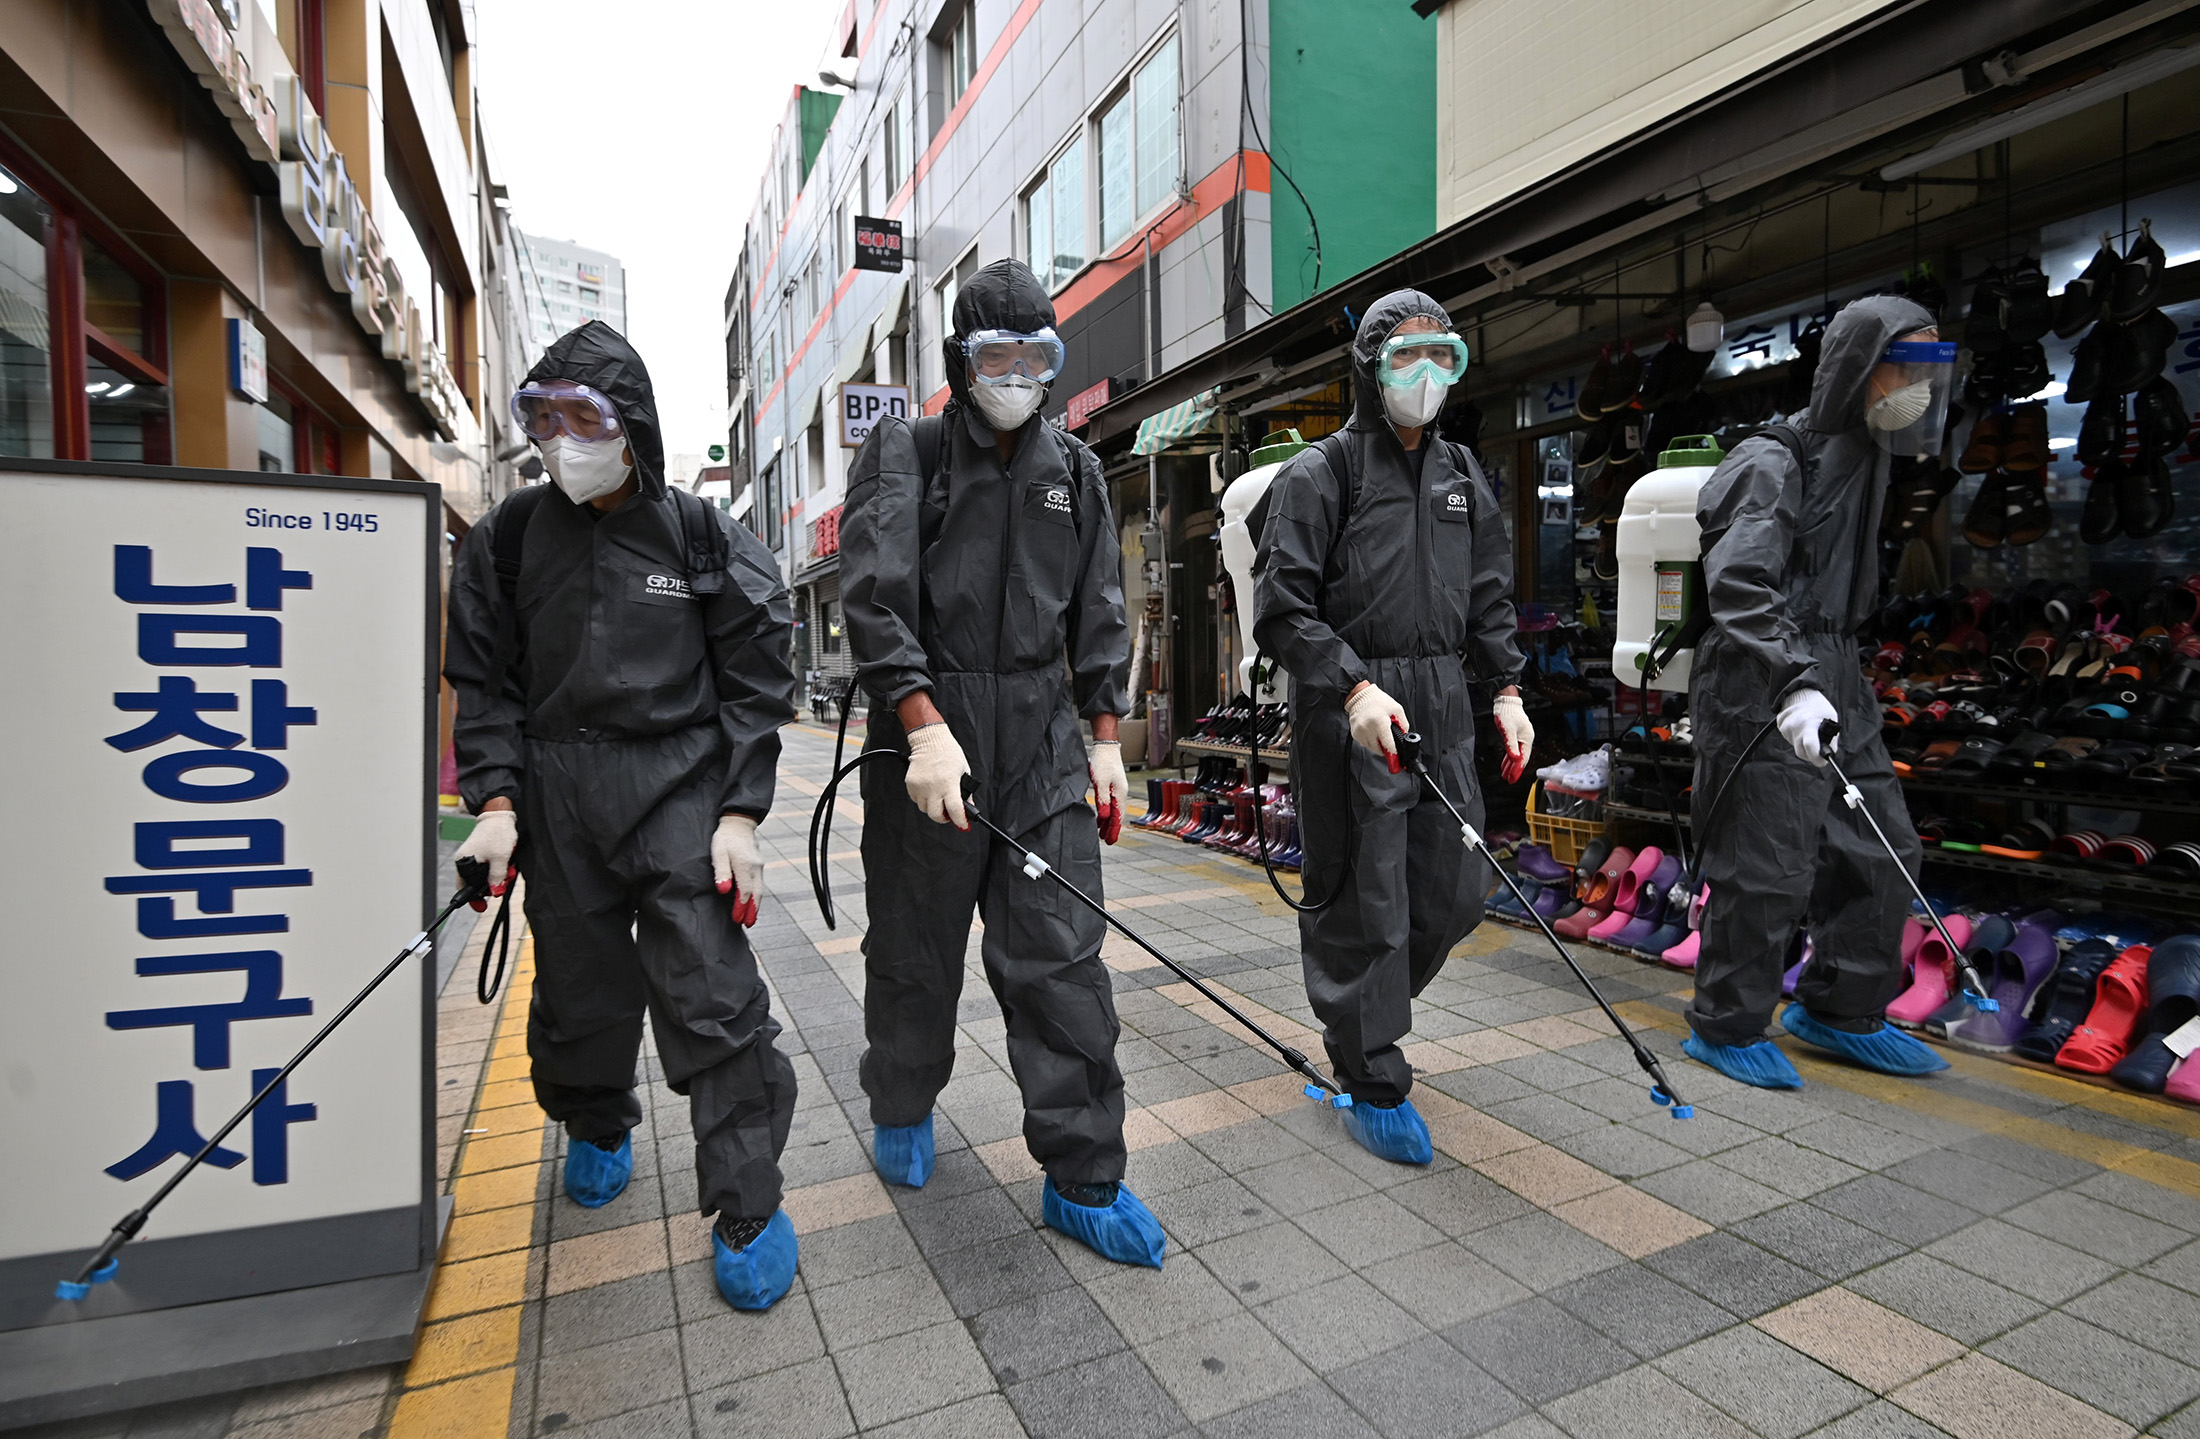 South Korean health officials from Bupyeong-gu office spray disinfectants at a shopping district in Incheon on September 17, amid the new COVID-19 coronavirus pandemic.